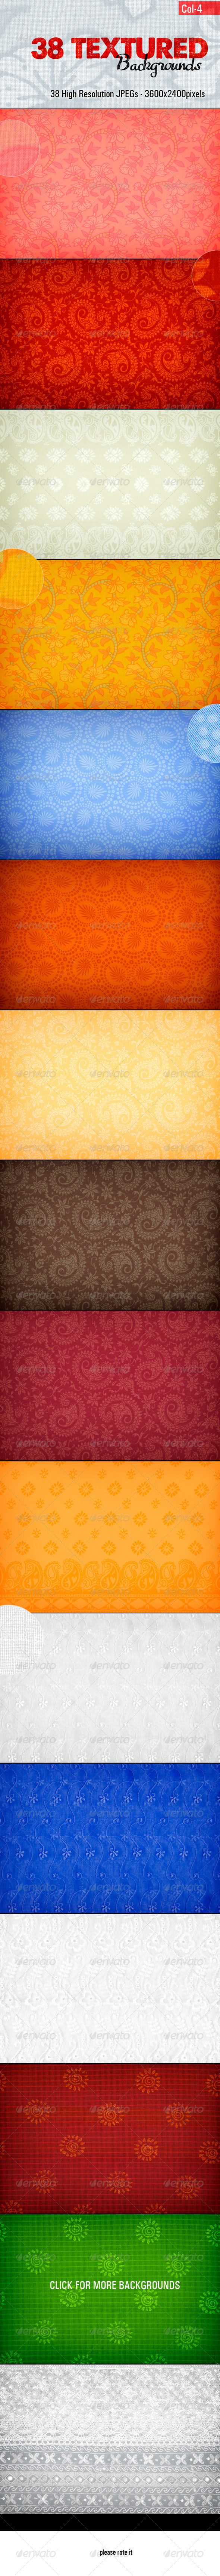 Texture Backgrounds - Collection 4 - Backgrounds Graphics